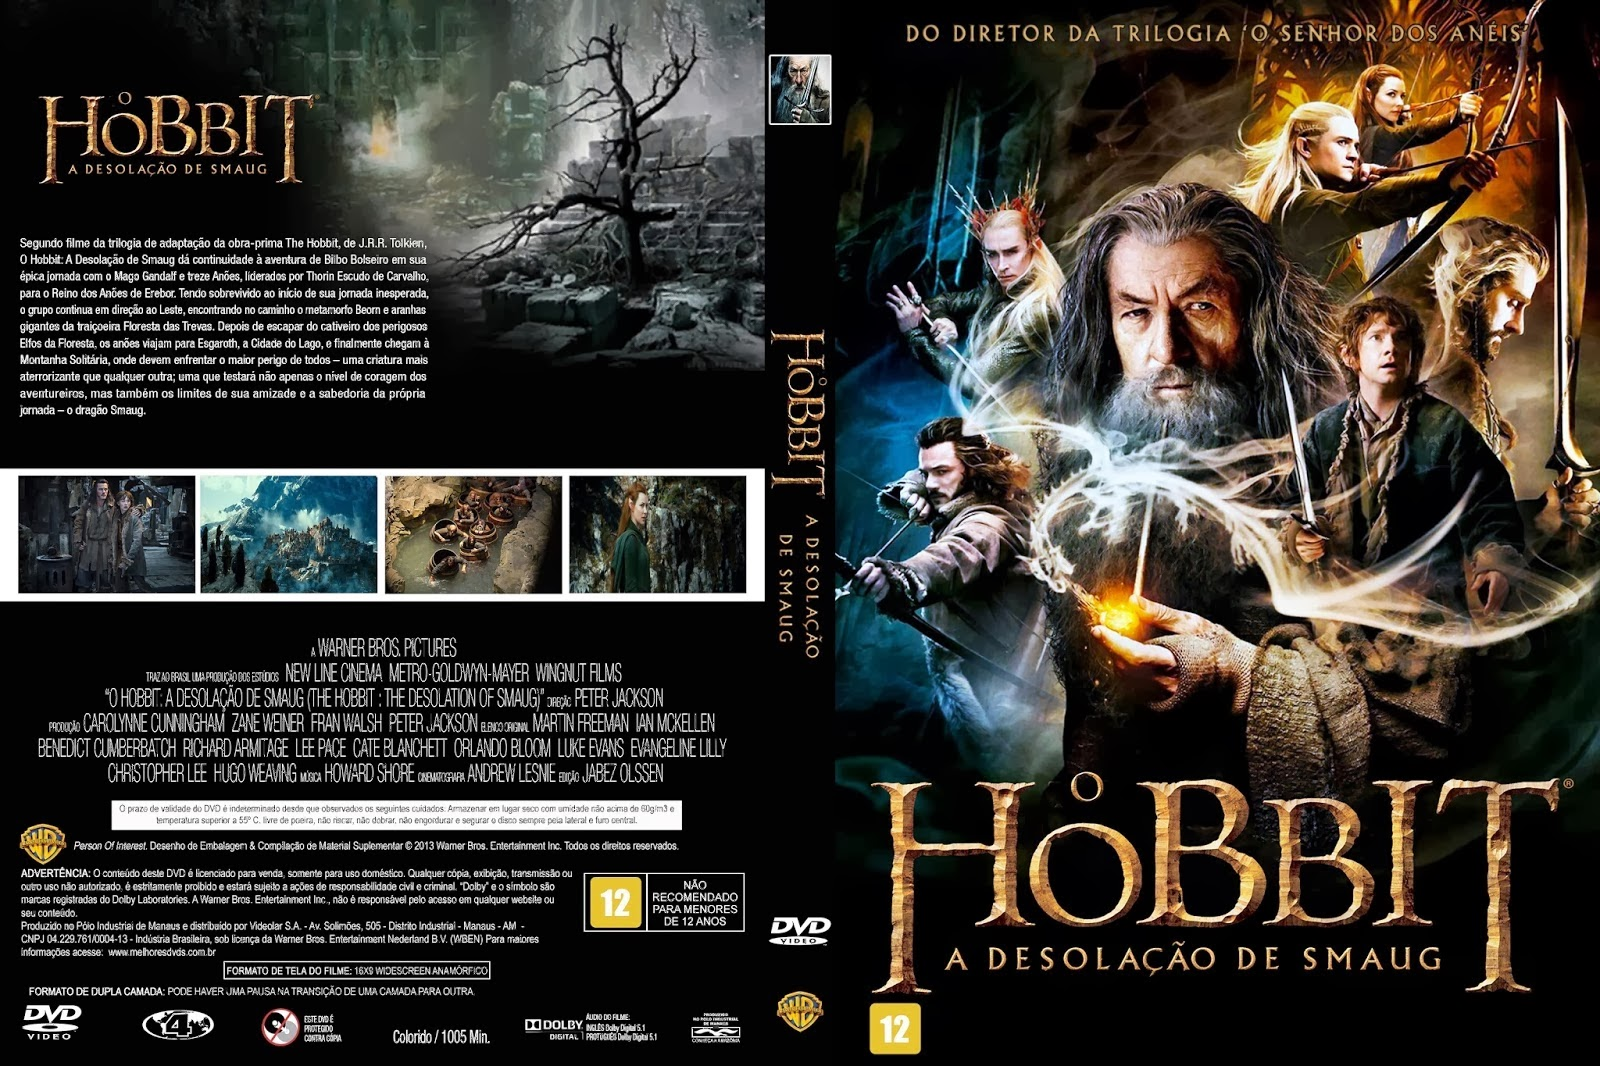 Baixar Filme Capa+O+Hobbit+A+Desola%C3%A7%C3%A3o+De+Smaug O Hobbit A Desolação de Smaug (The Hobbit: The Desolation of Smaug) (2013) DVDScr AVi Dual Áudio torrent